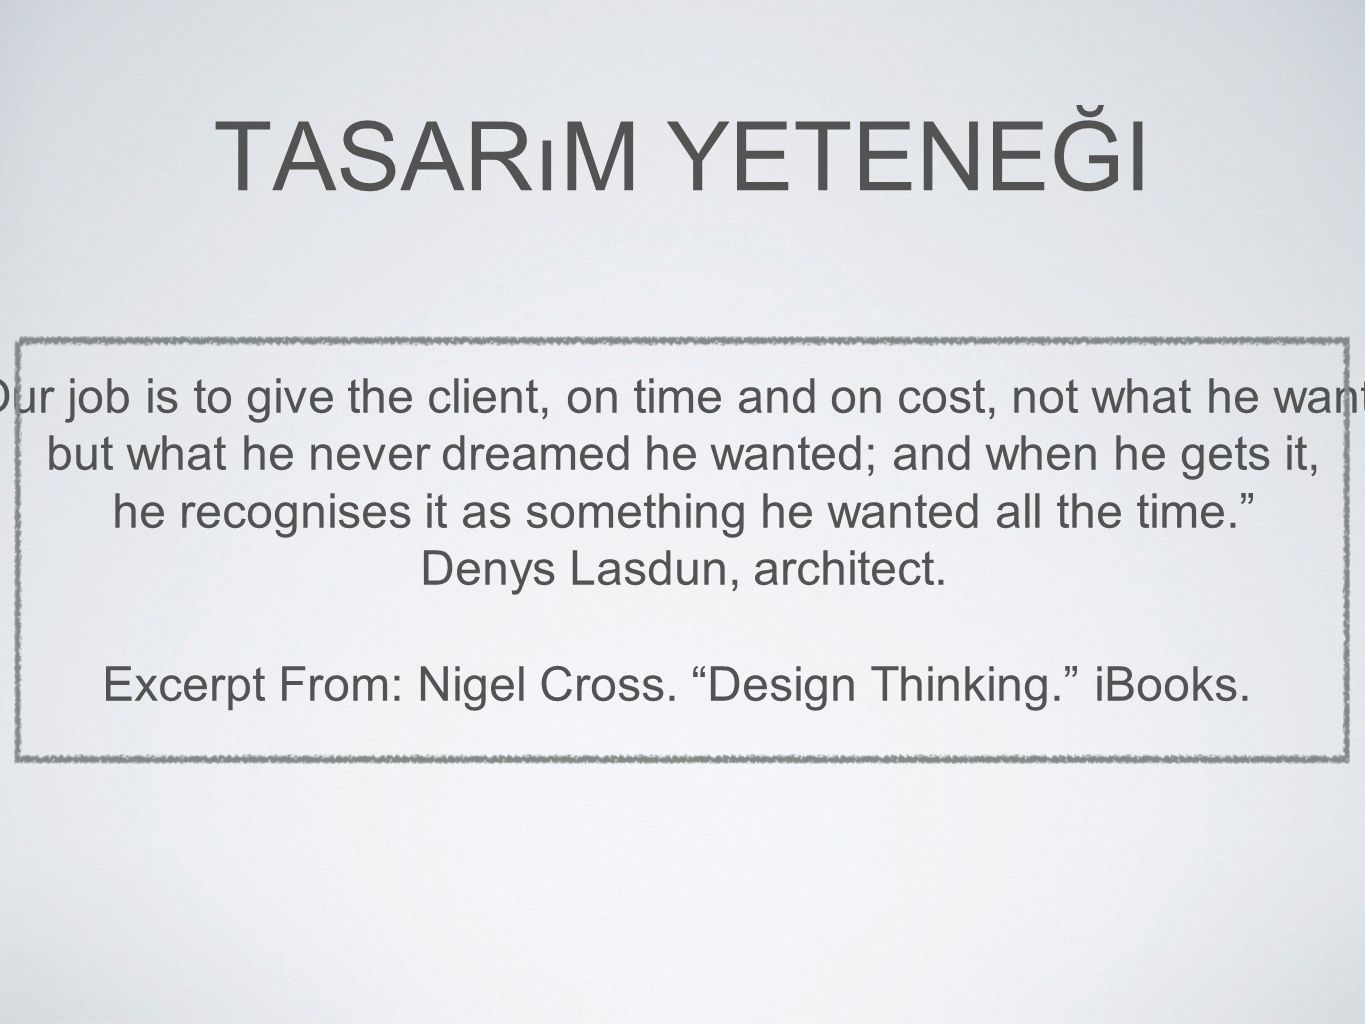 Tasarım Yeteneği Our job is to give the client, on time and on cost, not what he wants, but what he never dreamed he wanted; and when he gets it,